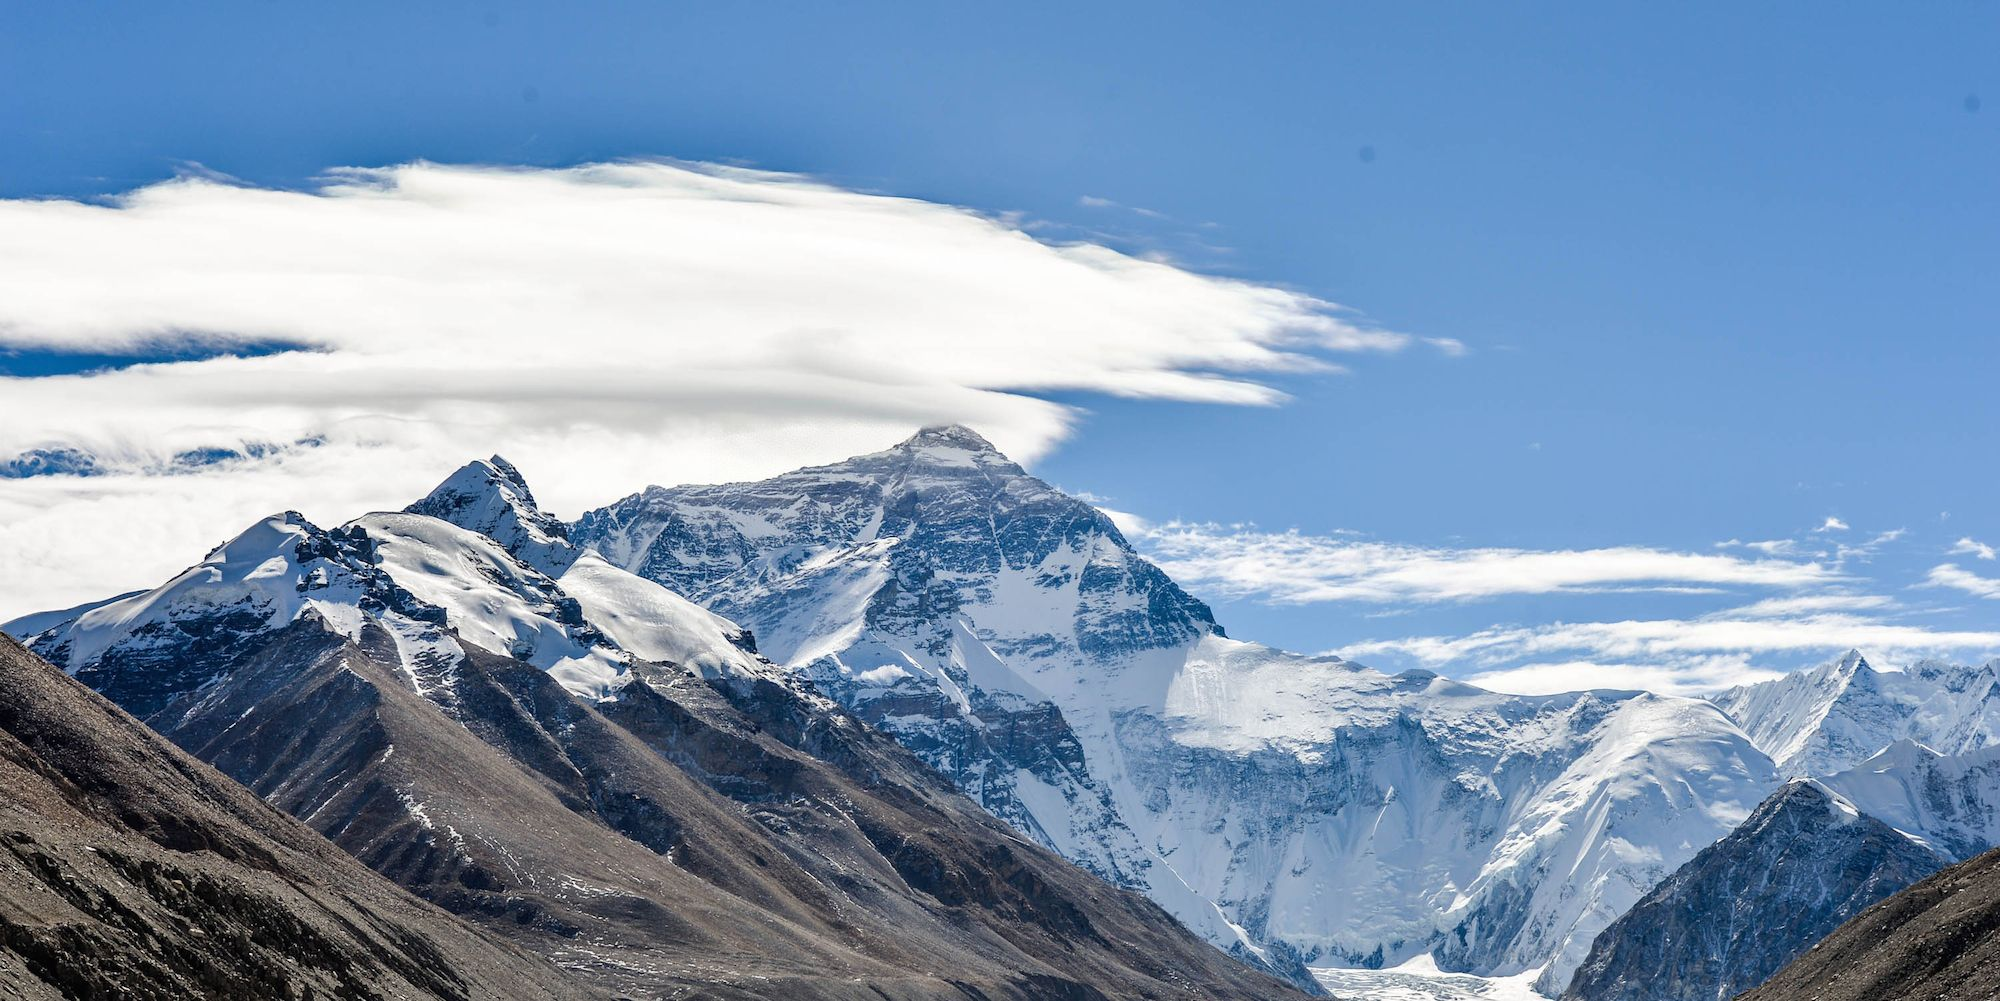 There Are Other Dangers on Mount Everest Besides Nature